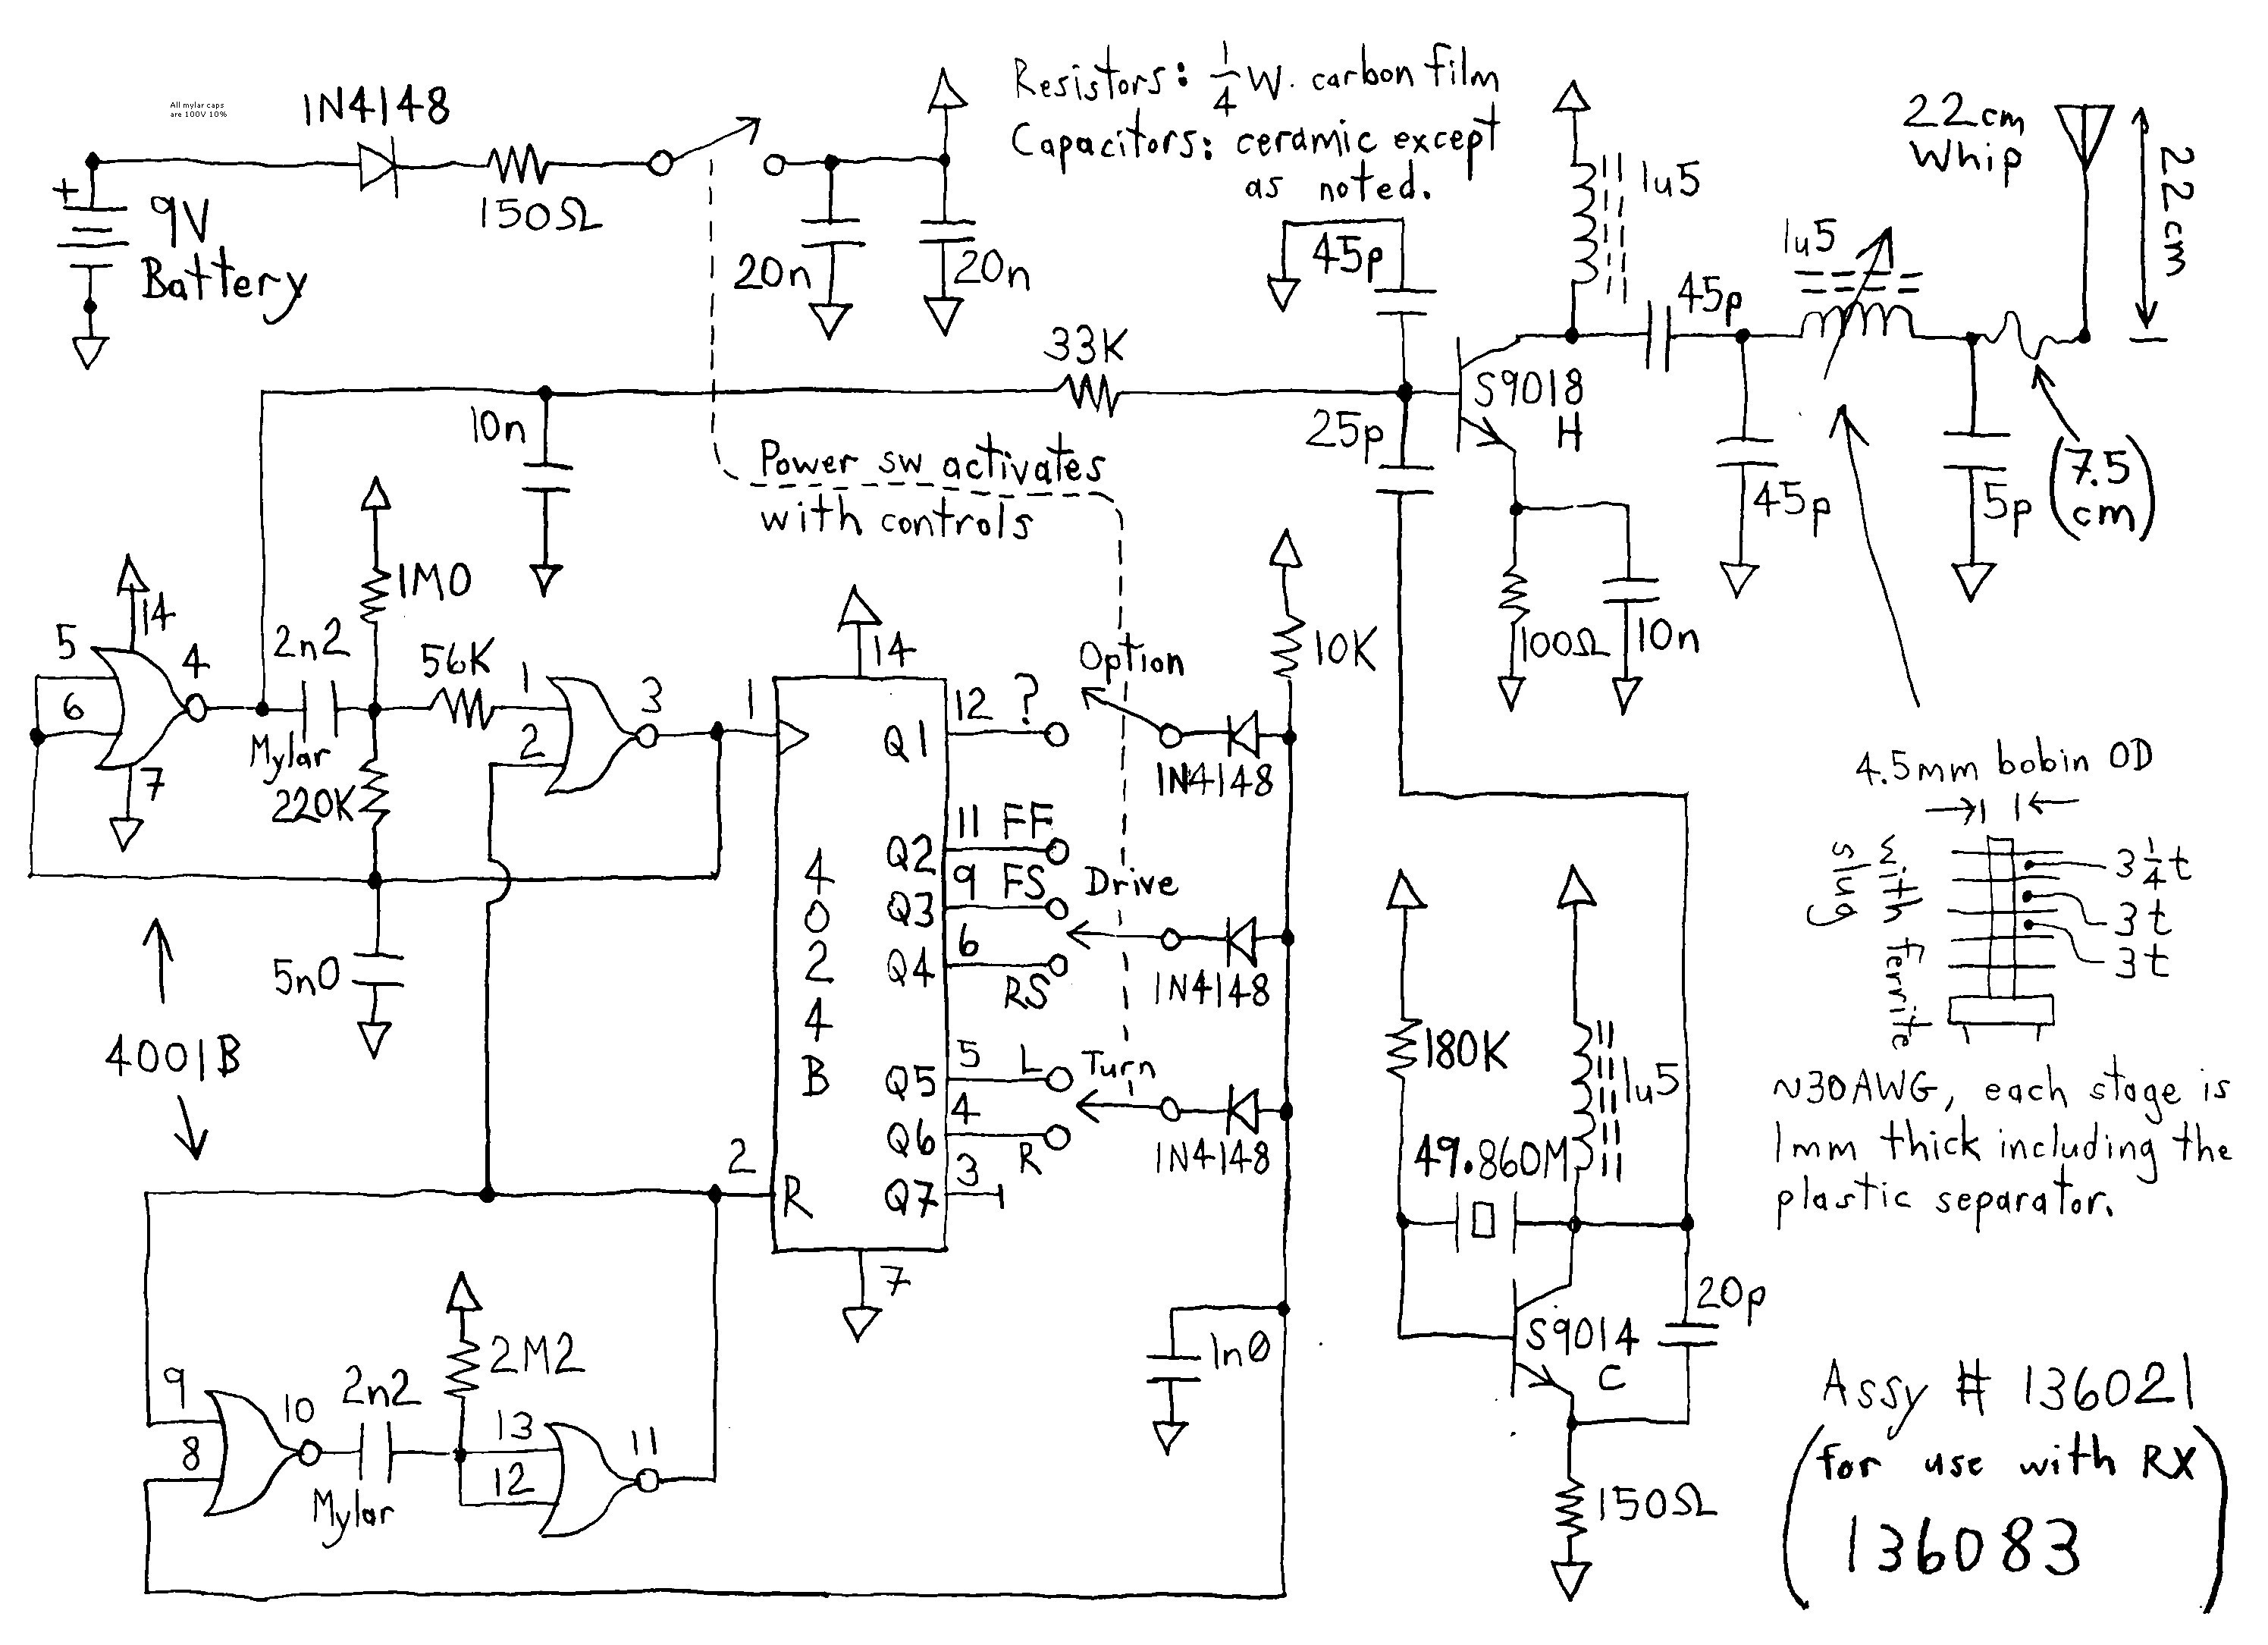 "The best free Wiring drawing images. Download from 927 free ... John Deere Wiring Diagram on john deere tractor wiring, john deere power beyond diagram, john deere 212 diagram, john deere fuse box diagram, john deere voltage regulator wiring, john deere starters diagrams, john deere chassis, john deere 345 diagram, john deere gt235 diagram, john deere repair diagrams, john deere fuel system diagram, john deere rear end diagrams, john deere sabre mower belt diagram, john deere 3020 diagram, john deere riding mower diagram, john deere 310e backhoe problems, john deere cylinder head, john deere 42"" deck diagrams, john deere fuel gauge wiring, john deere electrical diagrams,"